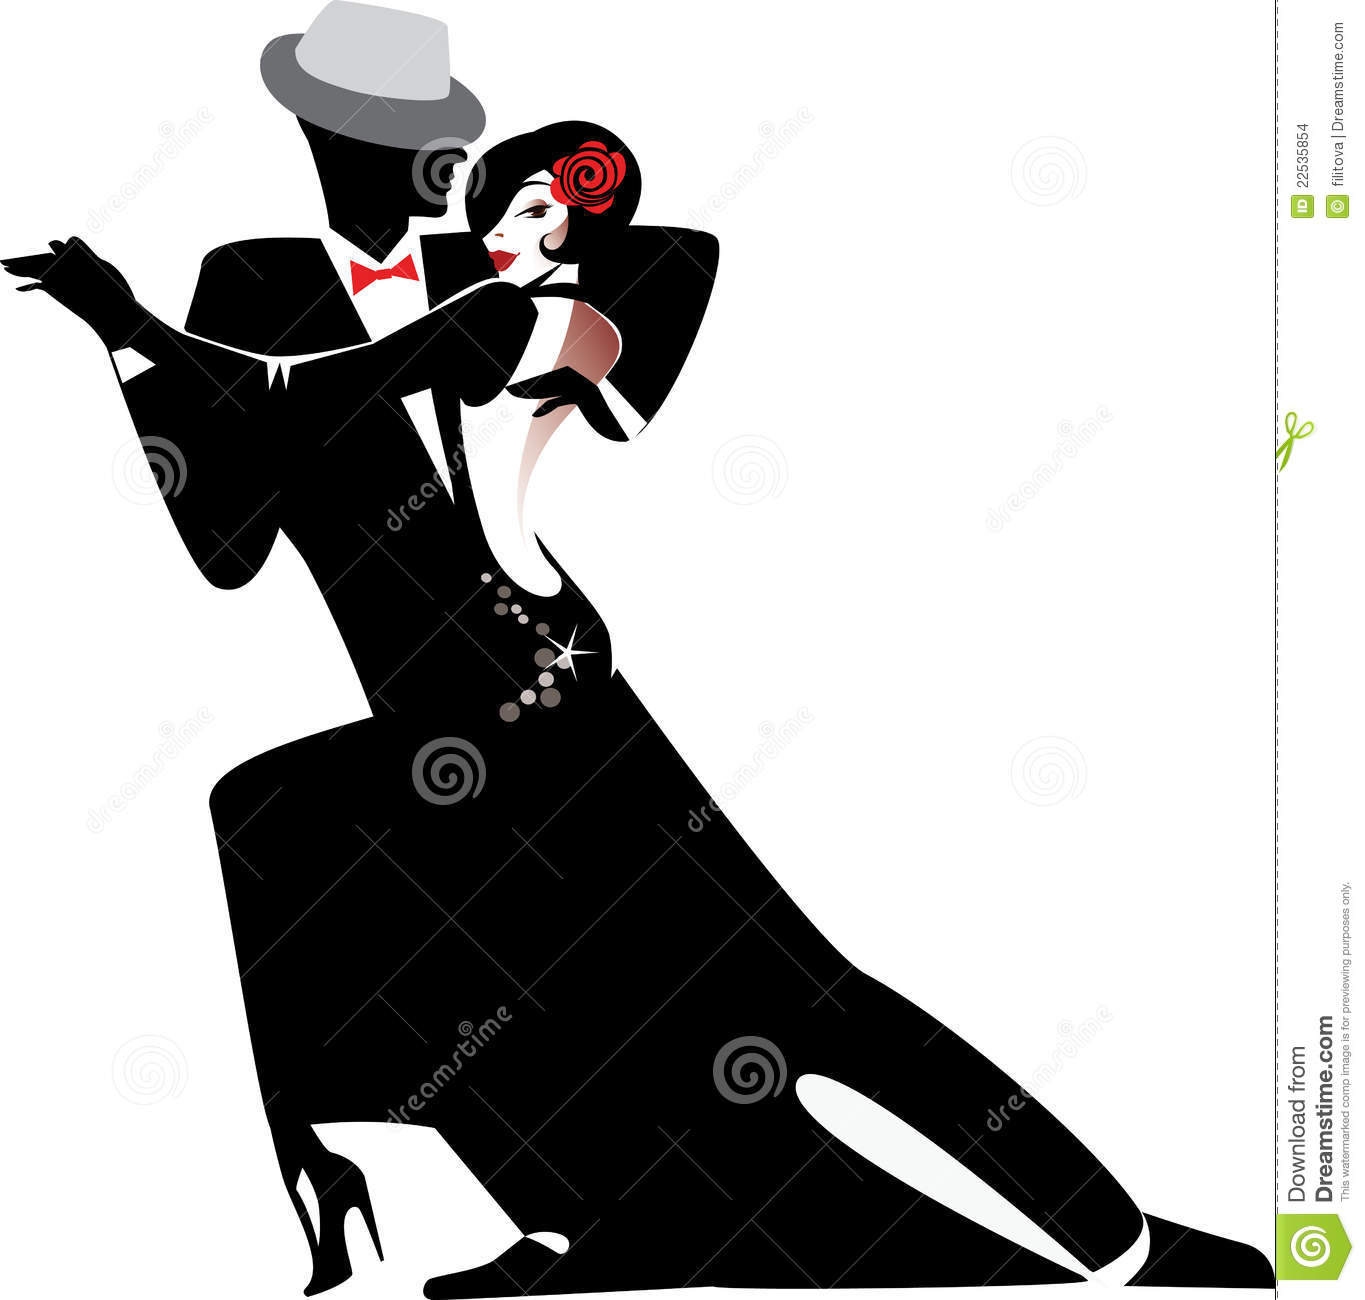 Silhouette of couple dancing tango